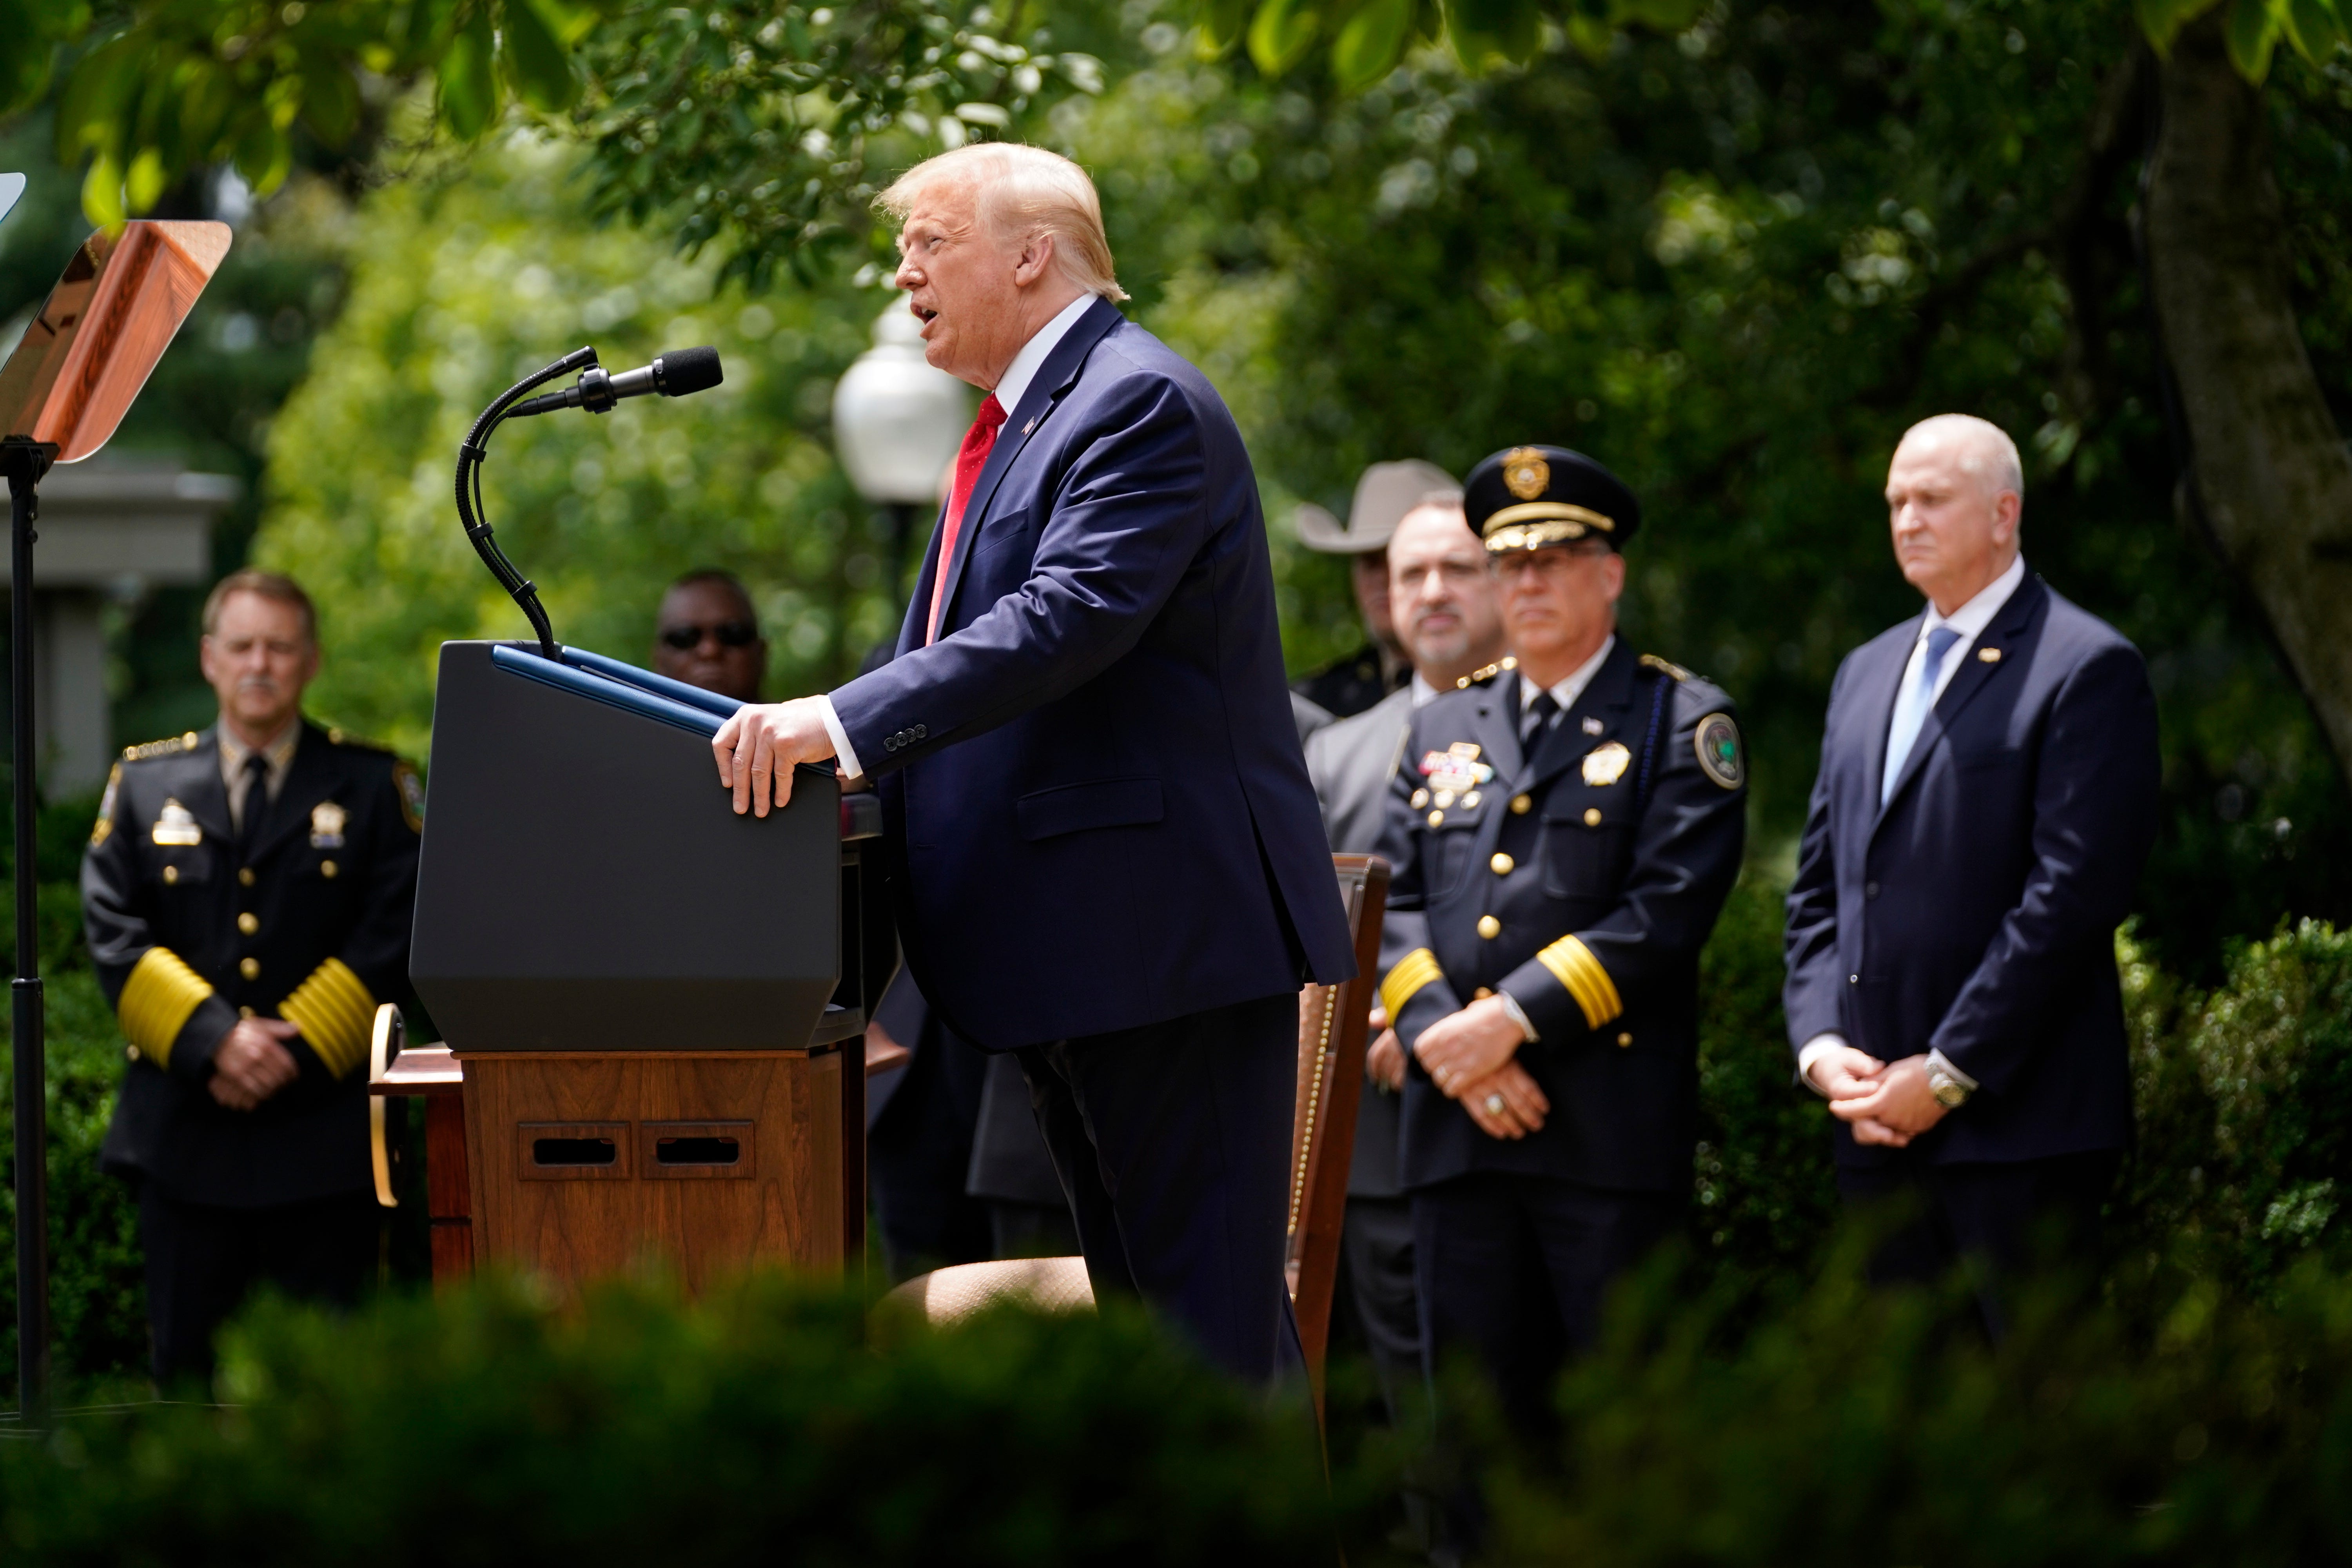 Ahmaud Arbery s relatives, other families have  contentious  meeting with Trump on police